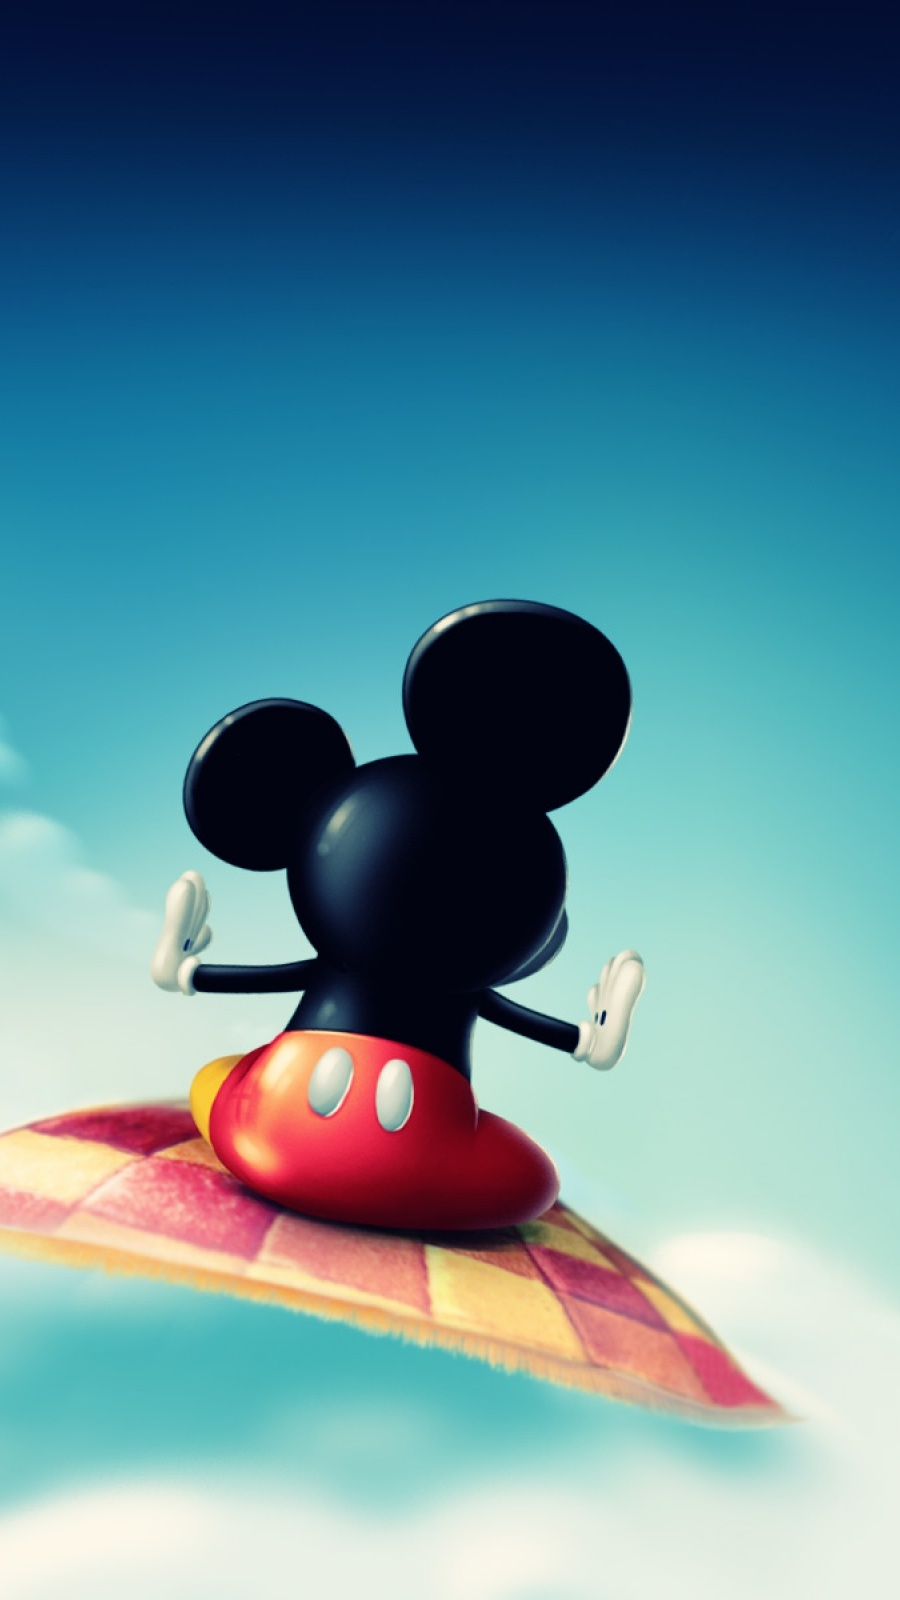 Wallpaper iphone mickey mouse - Wallpaper Iphone Mickey Mouse 19